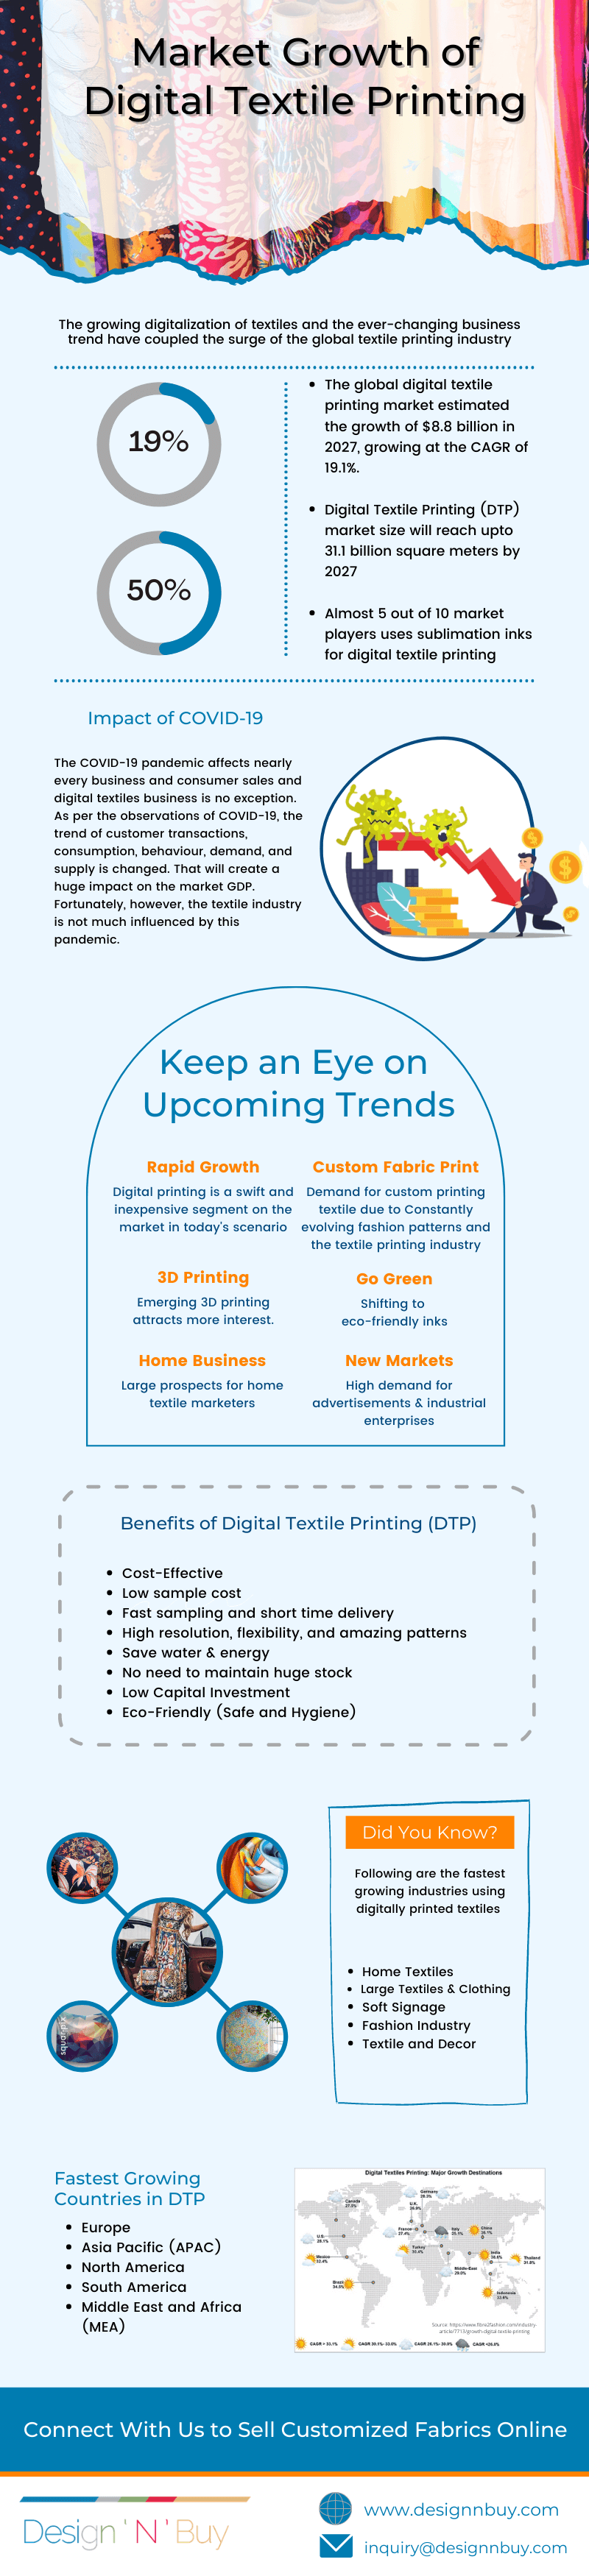 Infographic- Market Growth of Digital Textile Printing